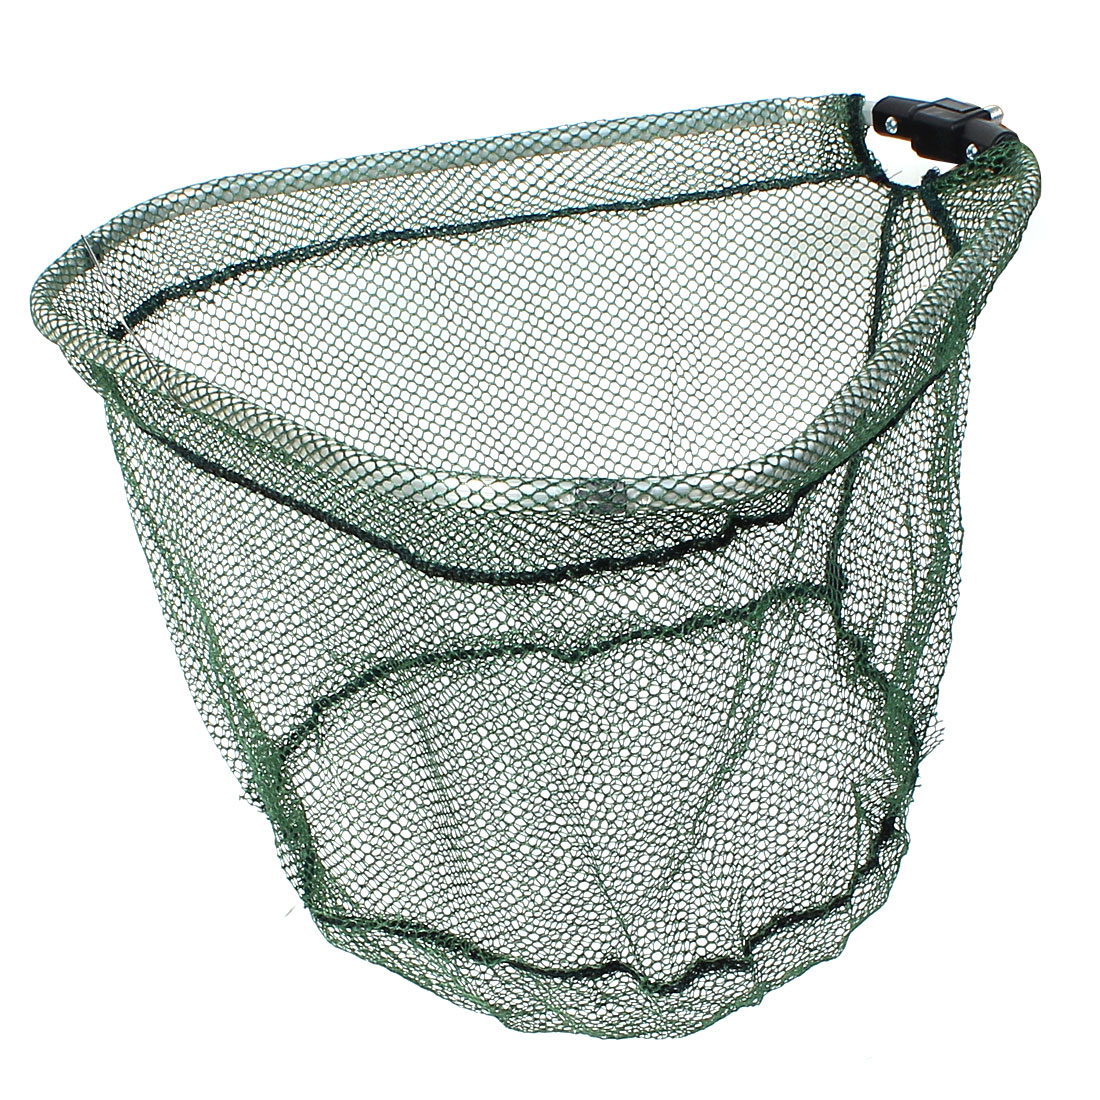 Metal Folding Frame Triangle Fishing Landing Net 31 x 35 x 27cm Green